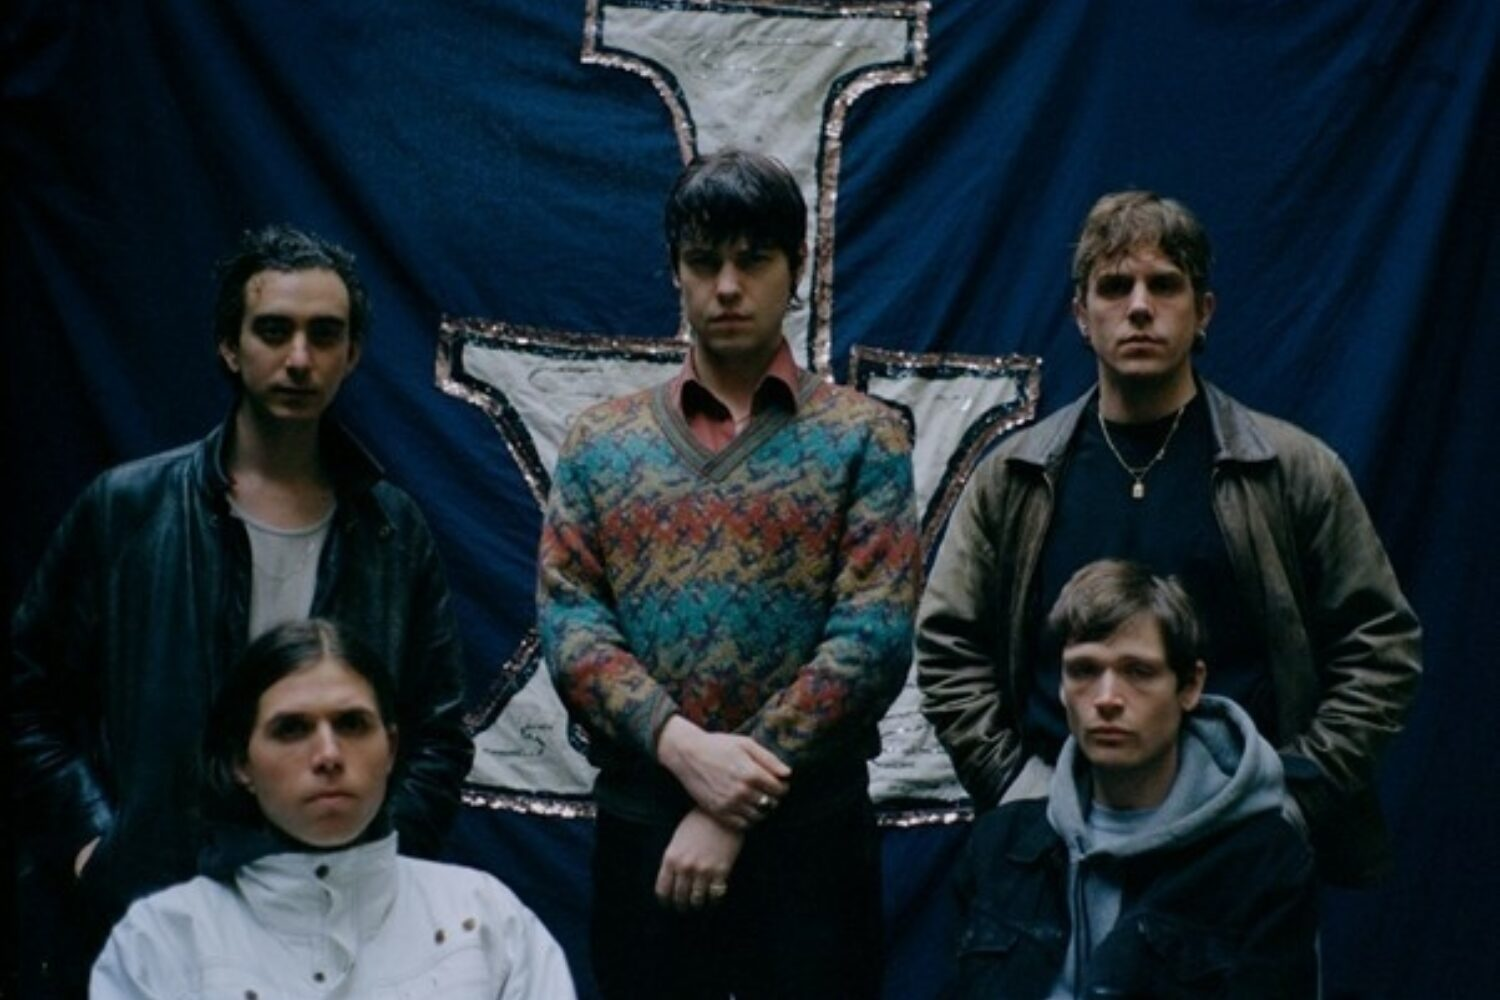 Iceage release new track 'Gold City'